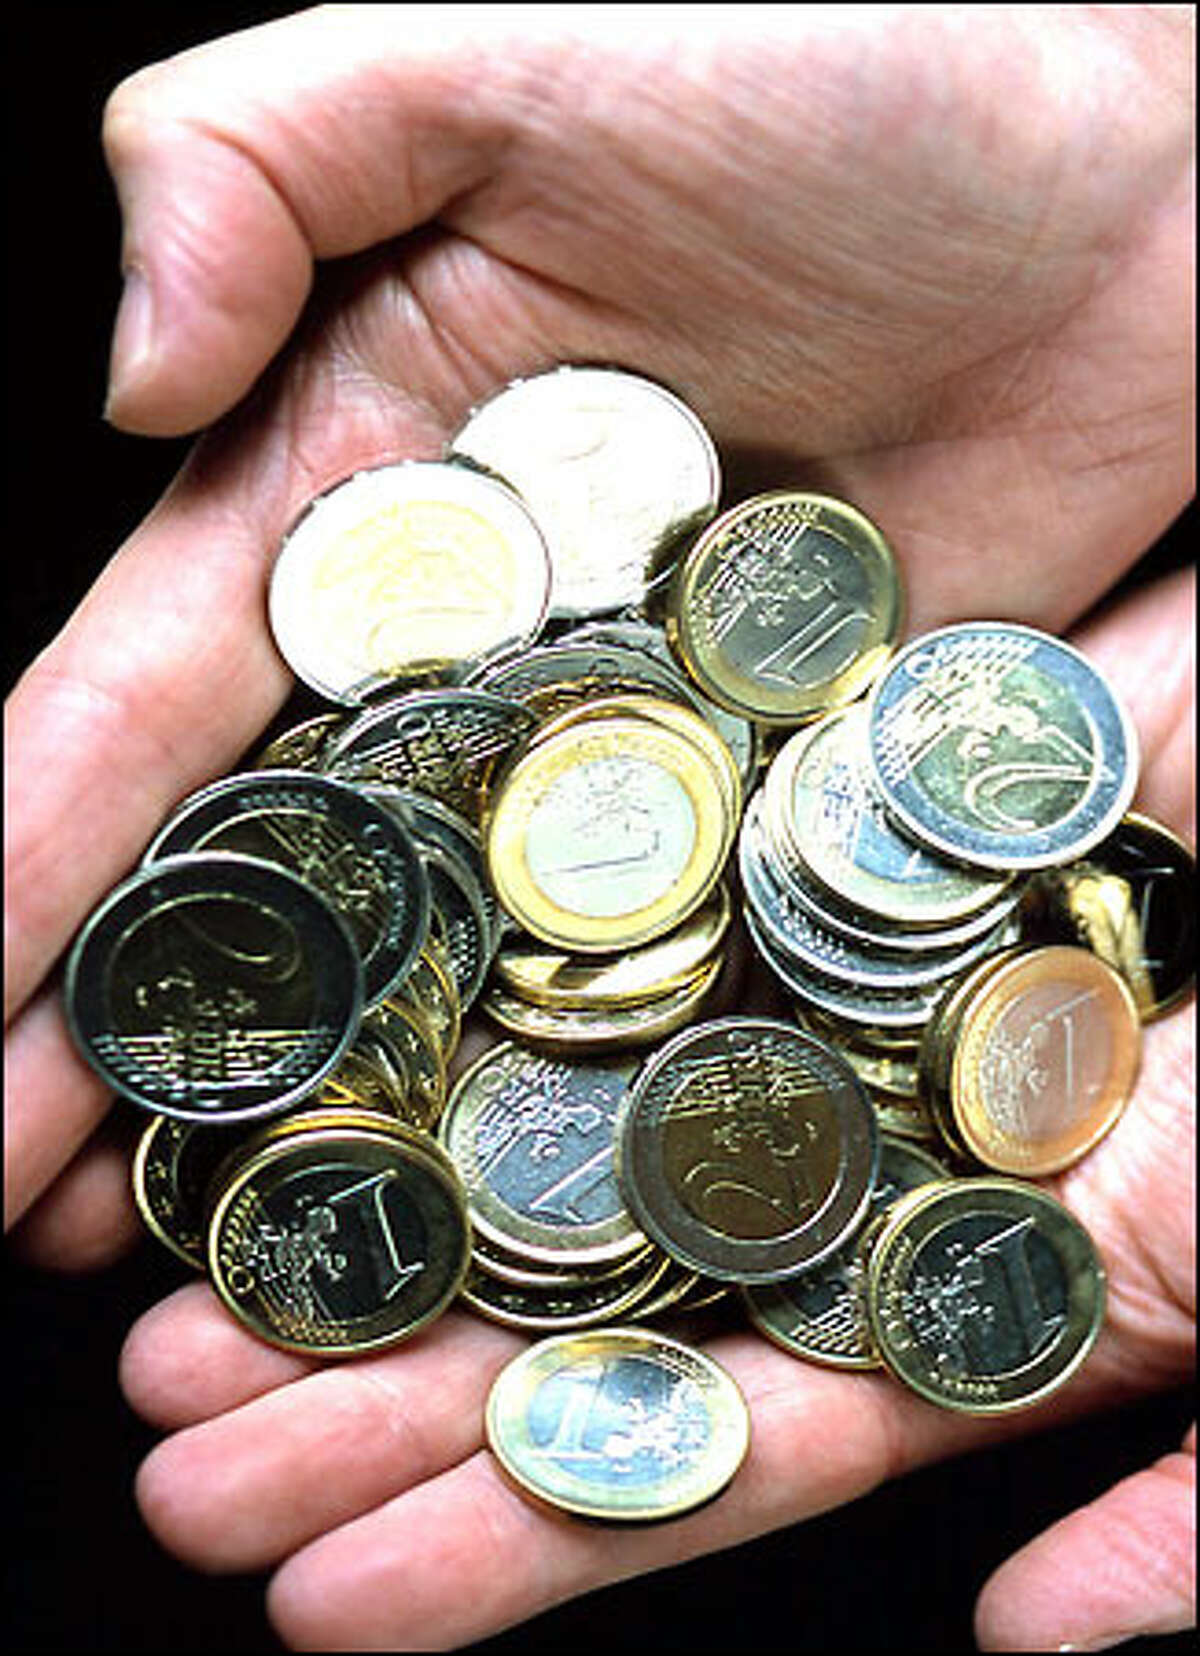 One-euro and 2-euro coins like these are the new money of millions.